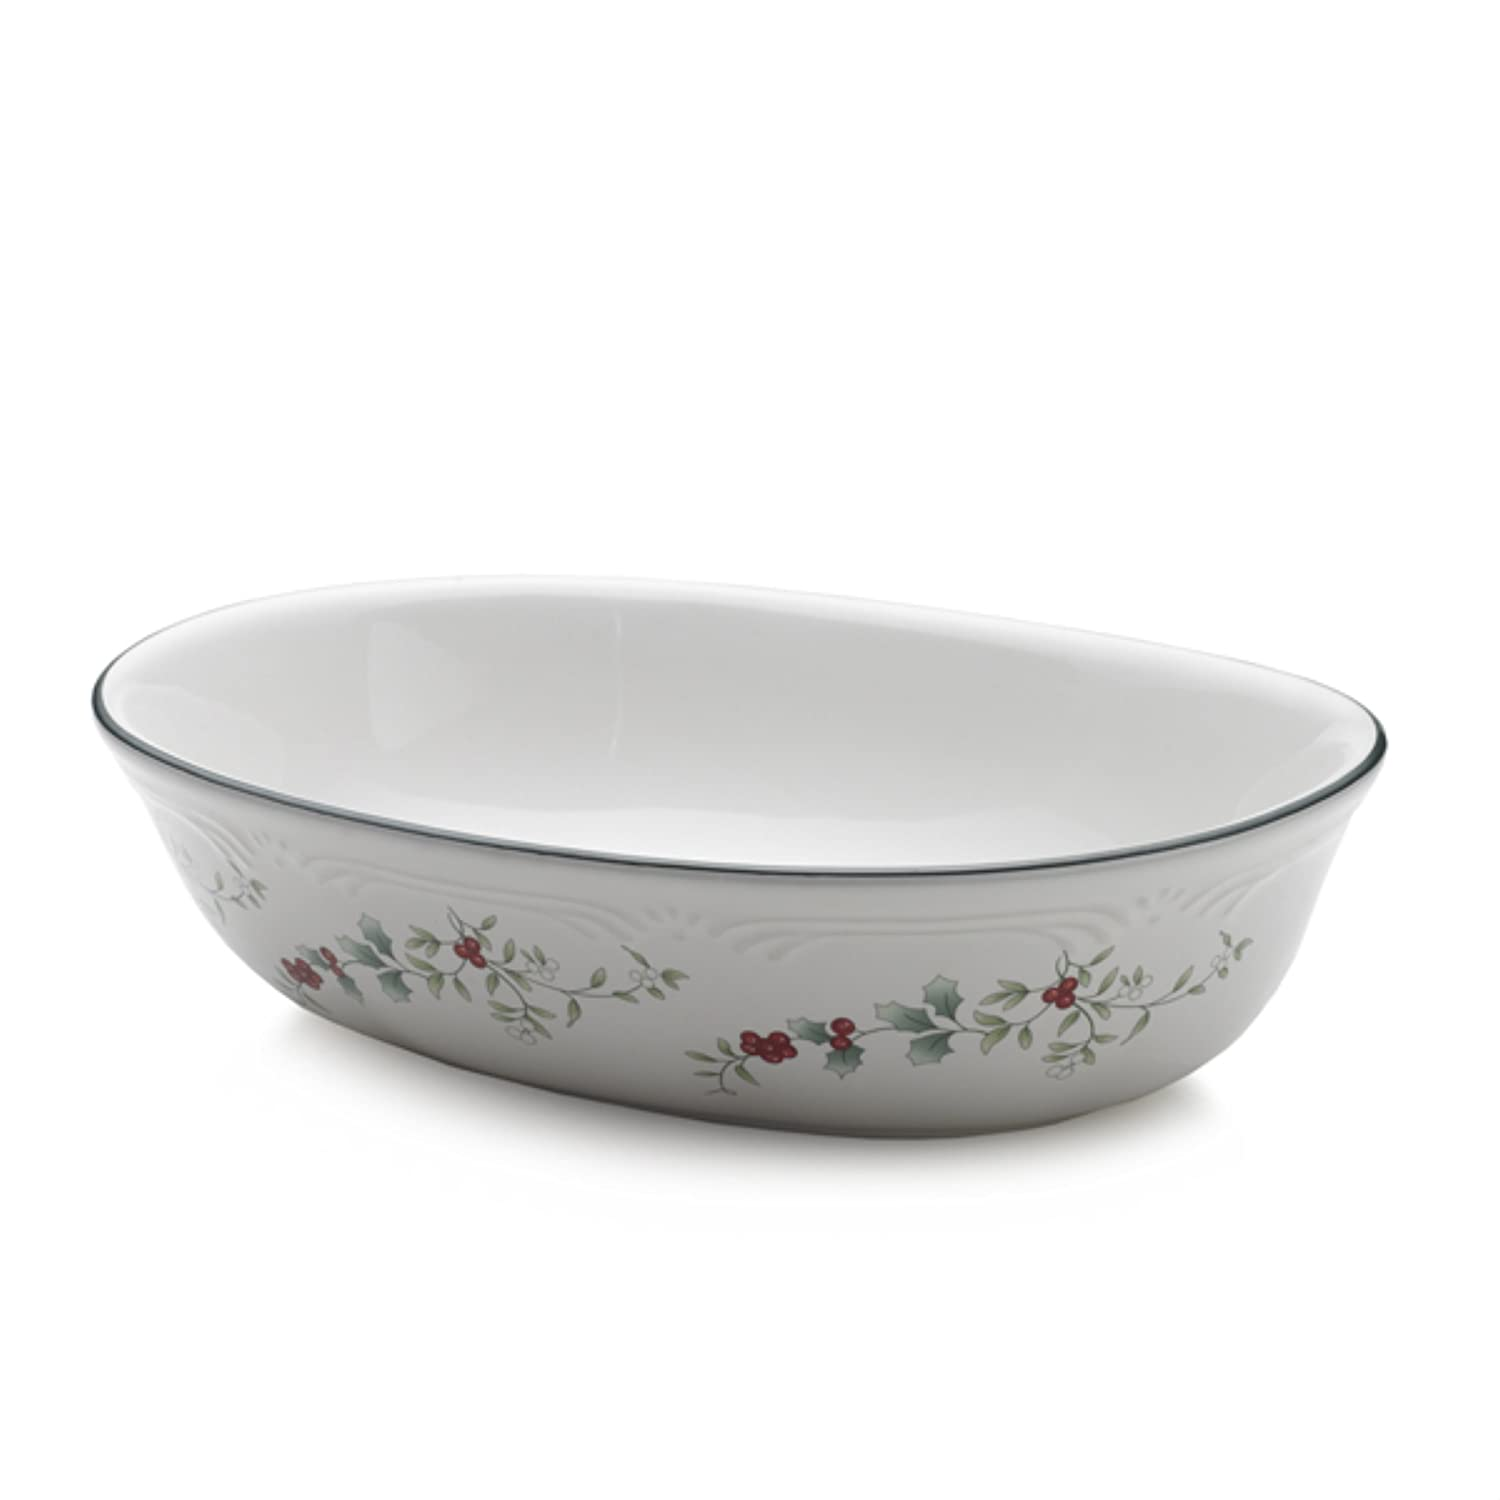 10994300 Pfaltzgraff Winterberry Dinnerware, Assorted